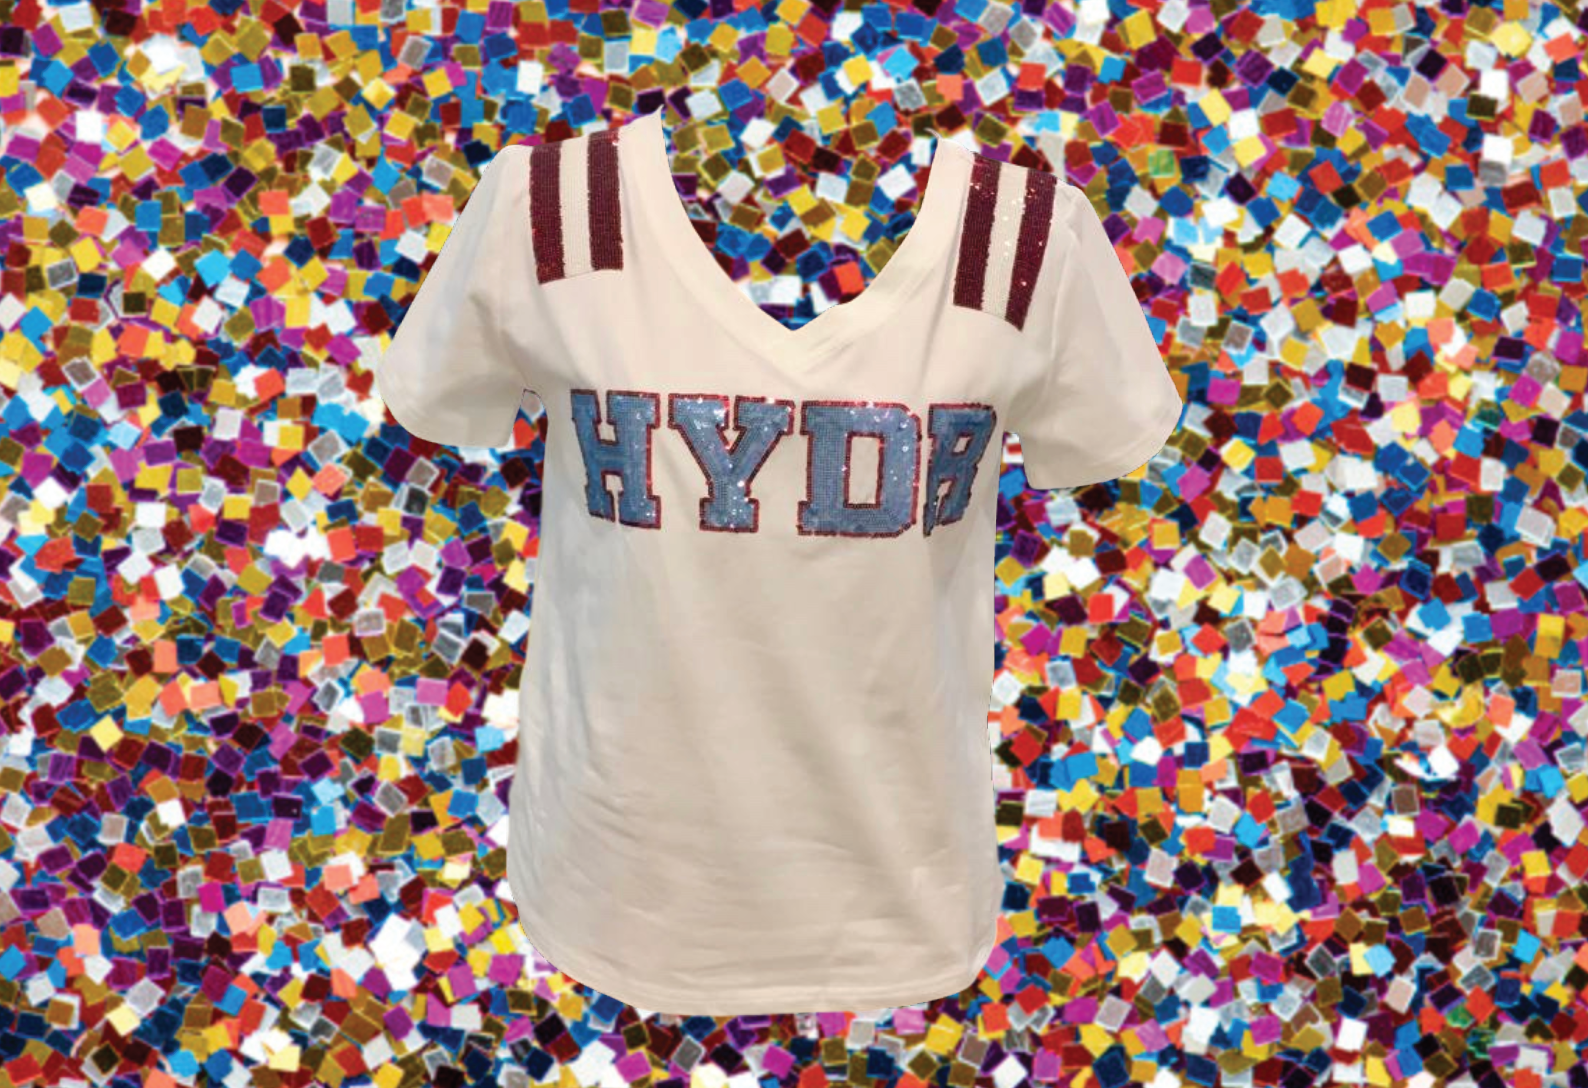 hot sale online 7a048 538e7 HYDR White Ole Miss Sequin Jersey Tee